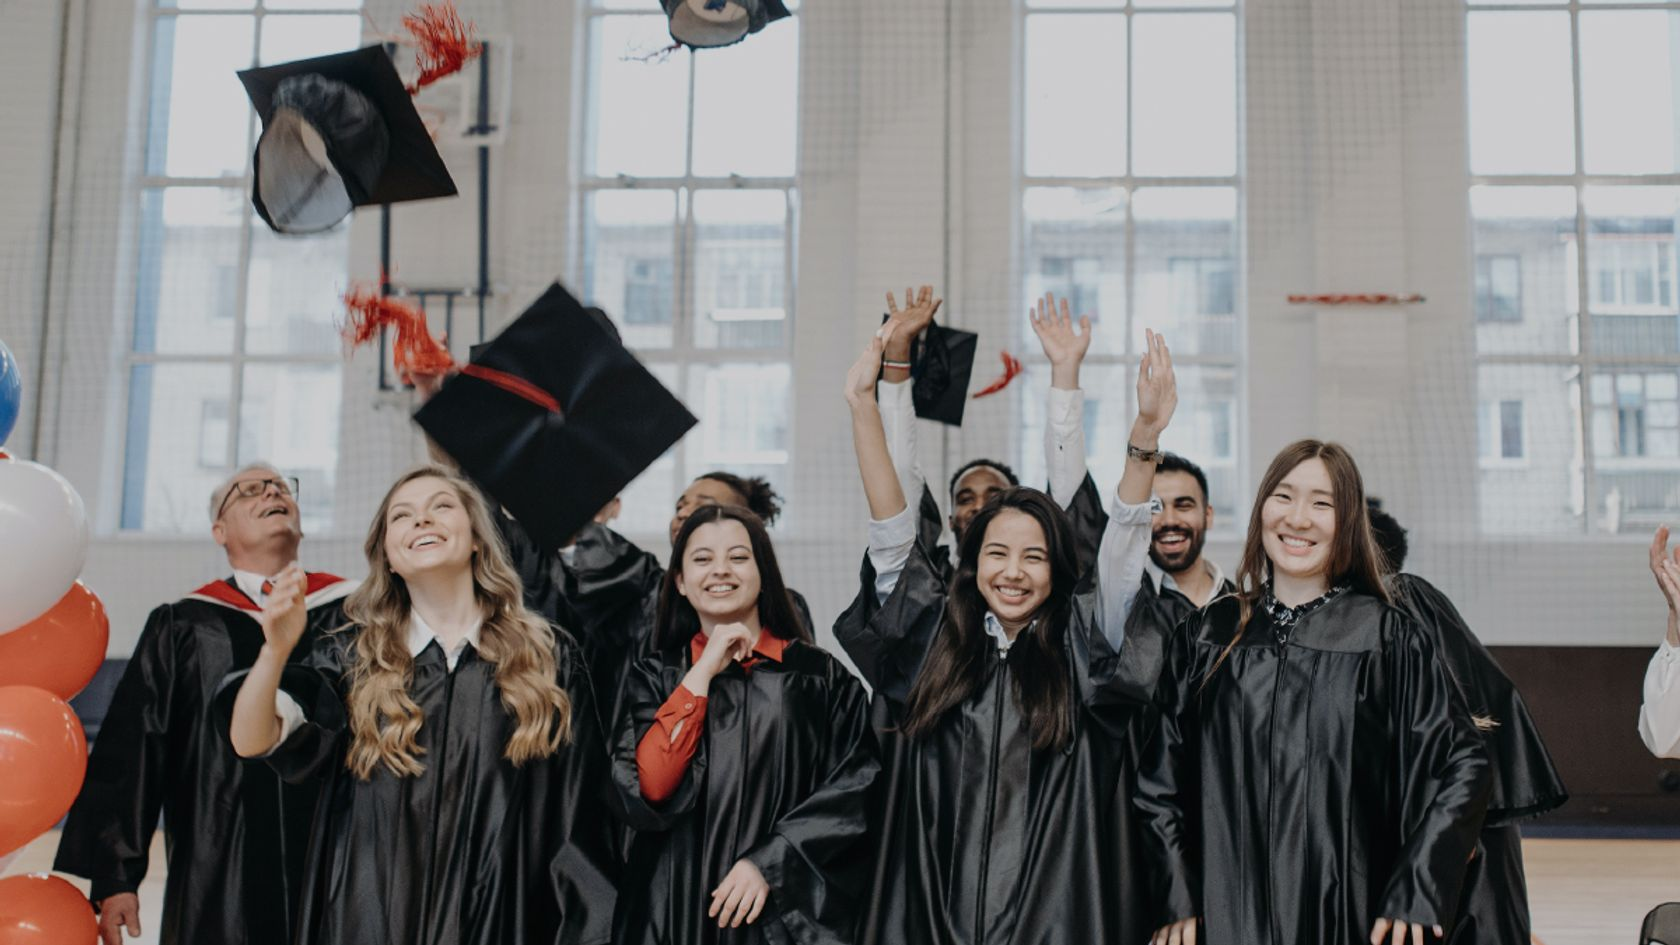 Do you want to study in Canada? Find the answers to some of the top frequently asked questions about higher education in Canada, here.